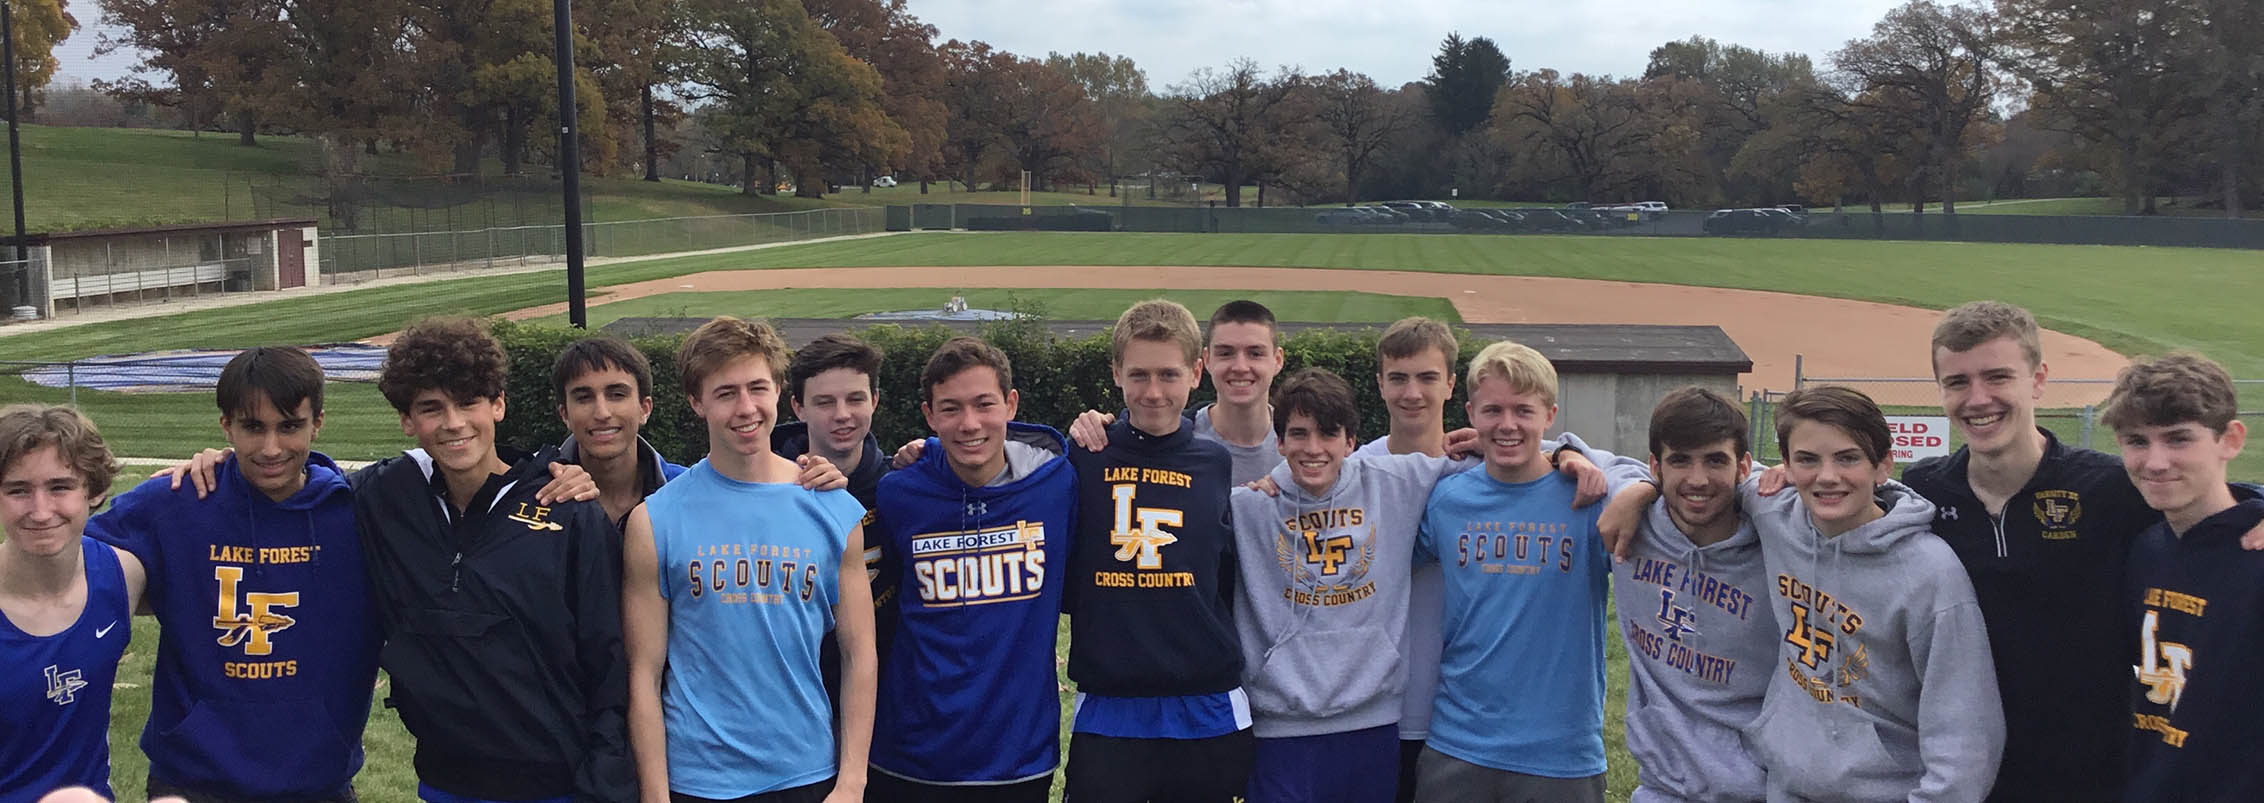 Team photo at Sectionals 10-27-18